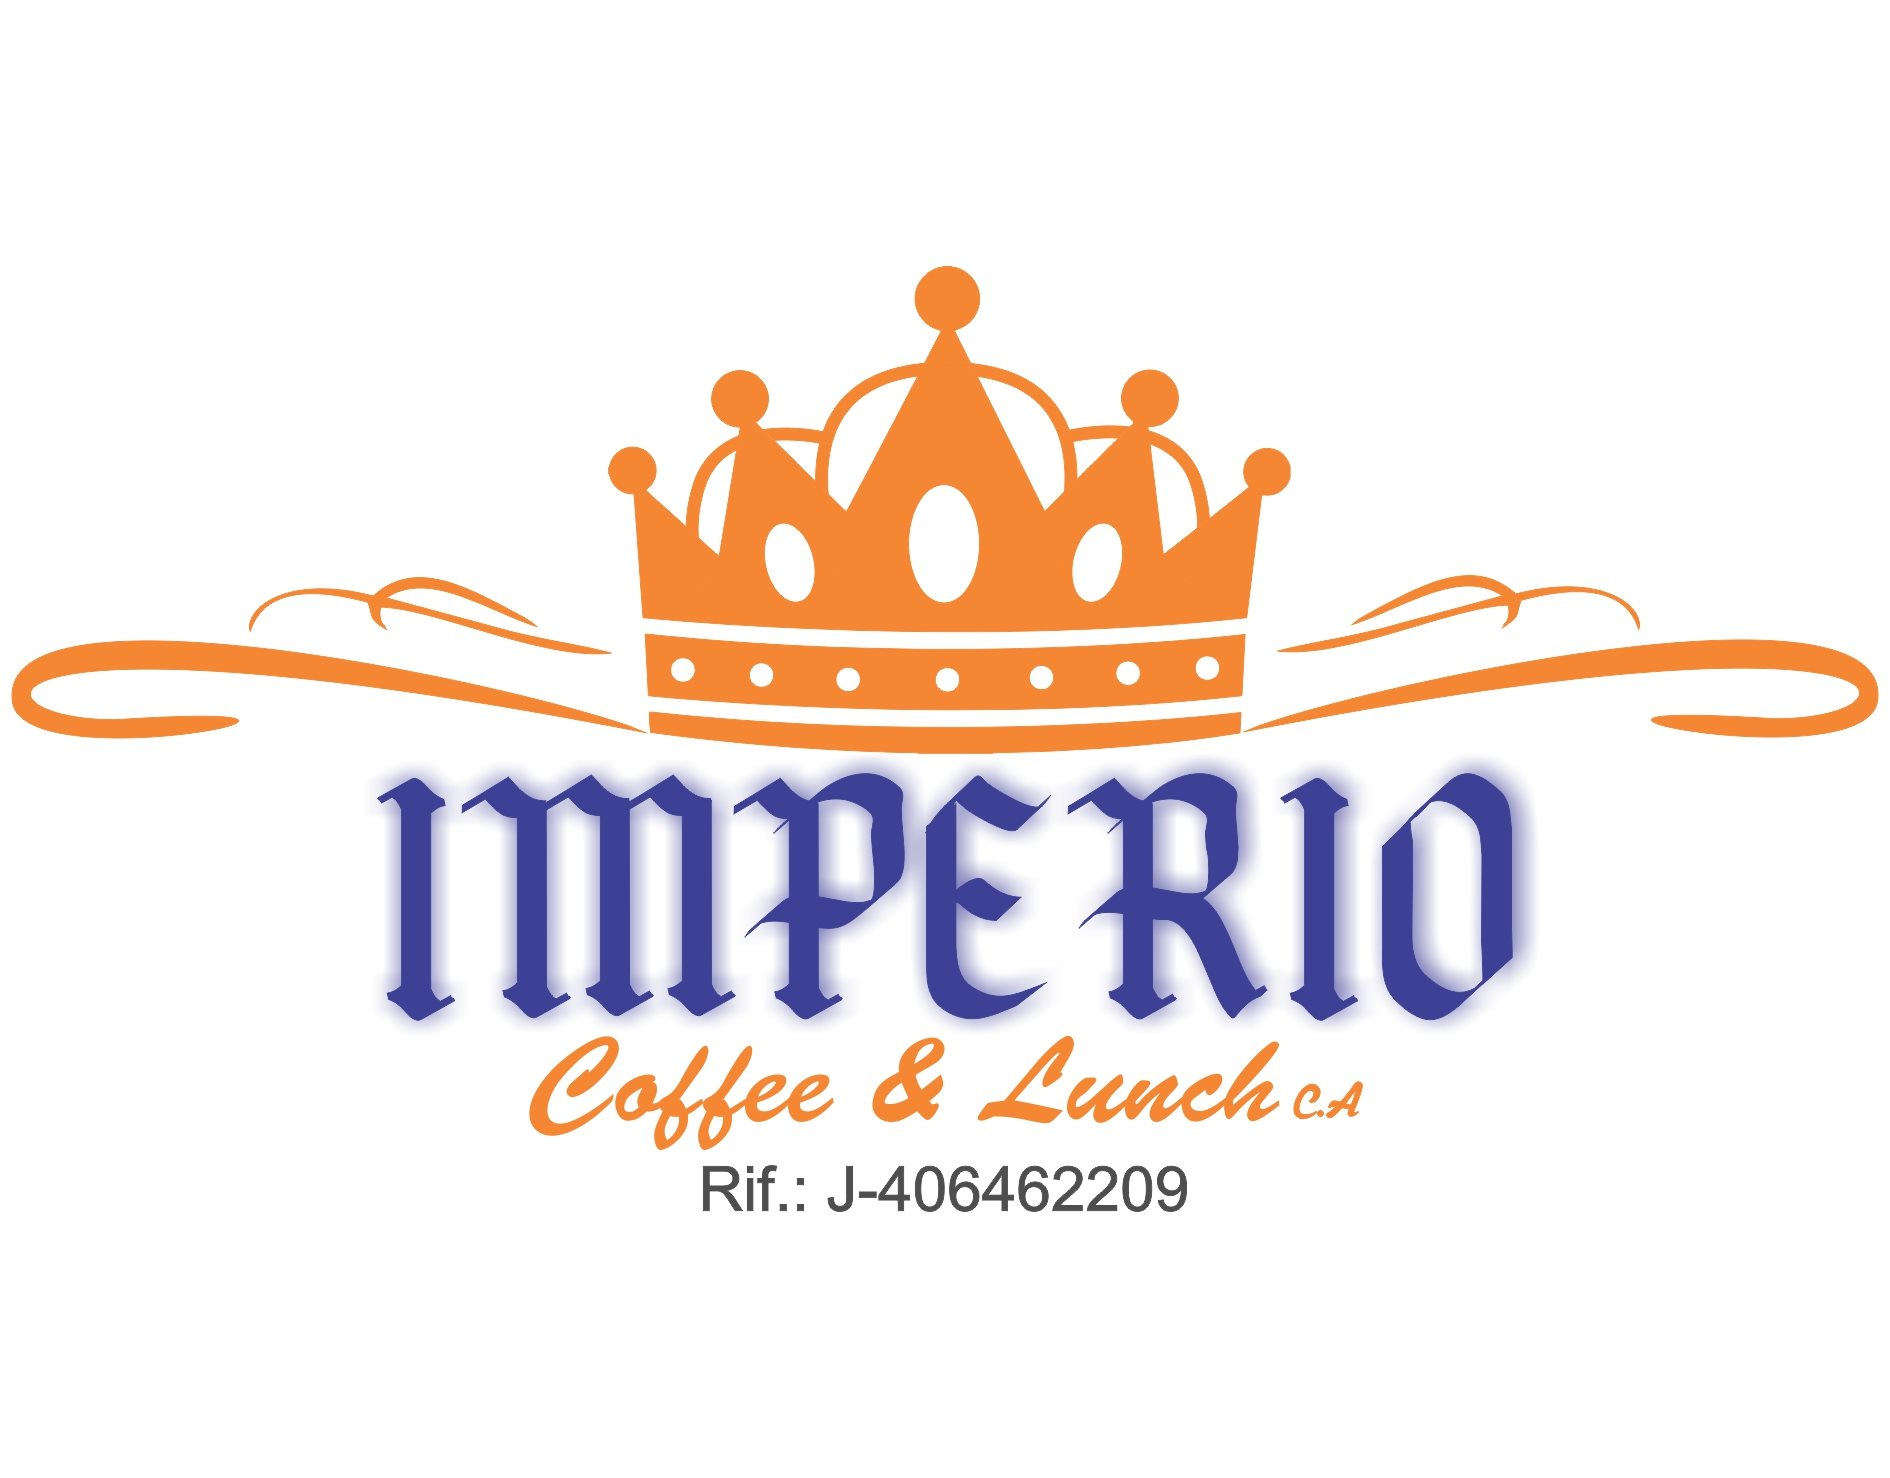 IMPERIO COFFEE & LUNCH C.A